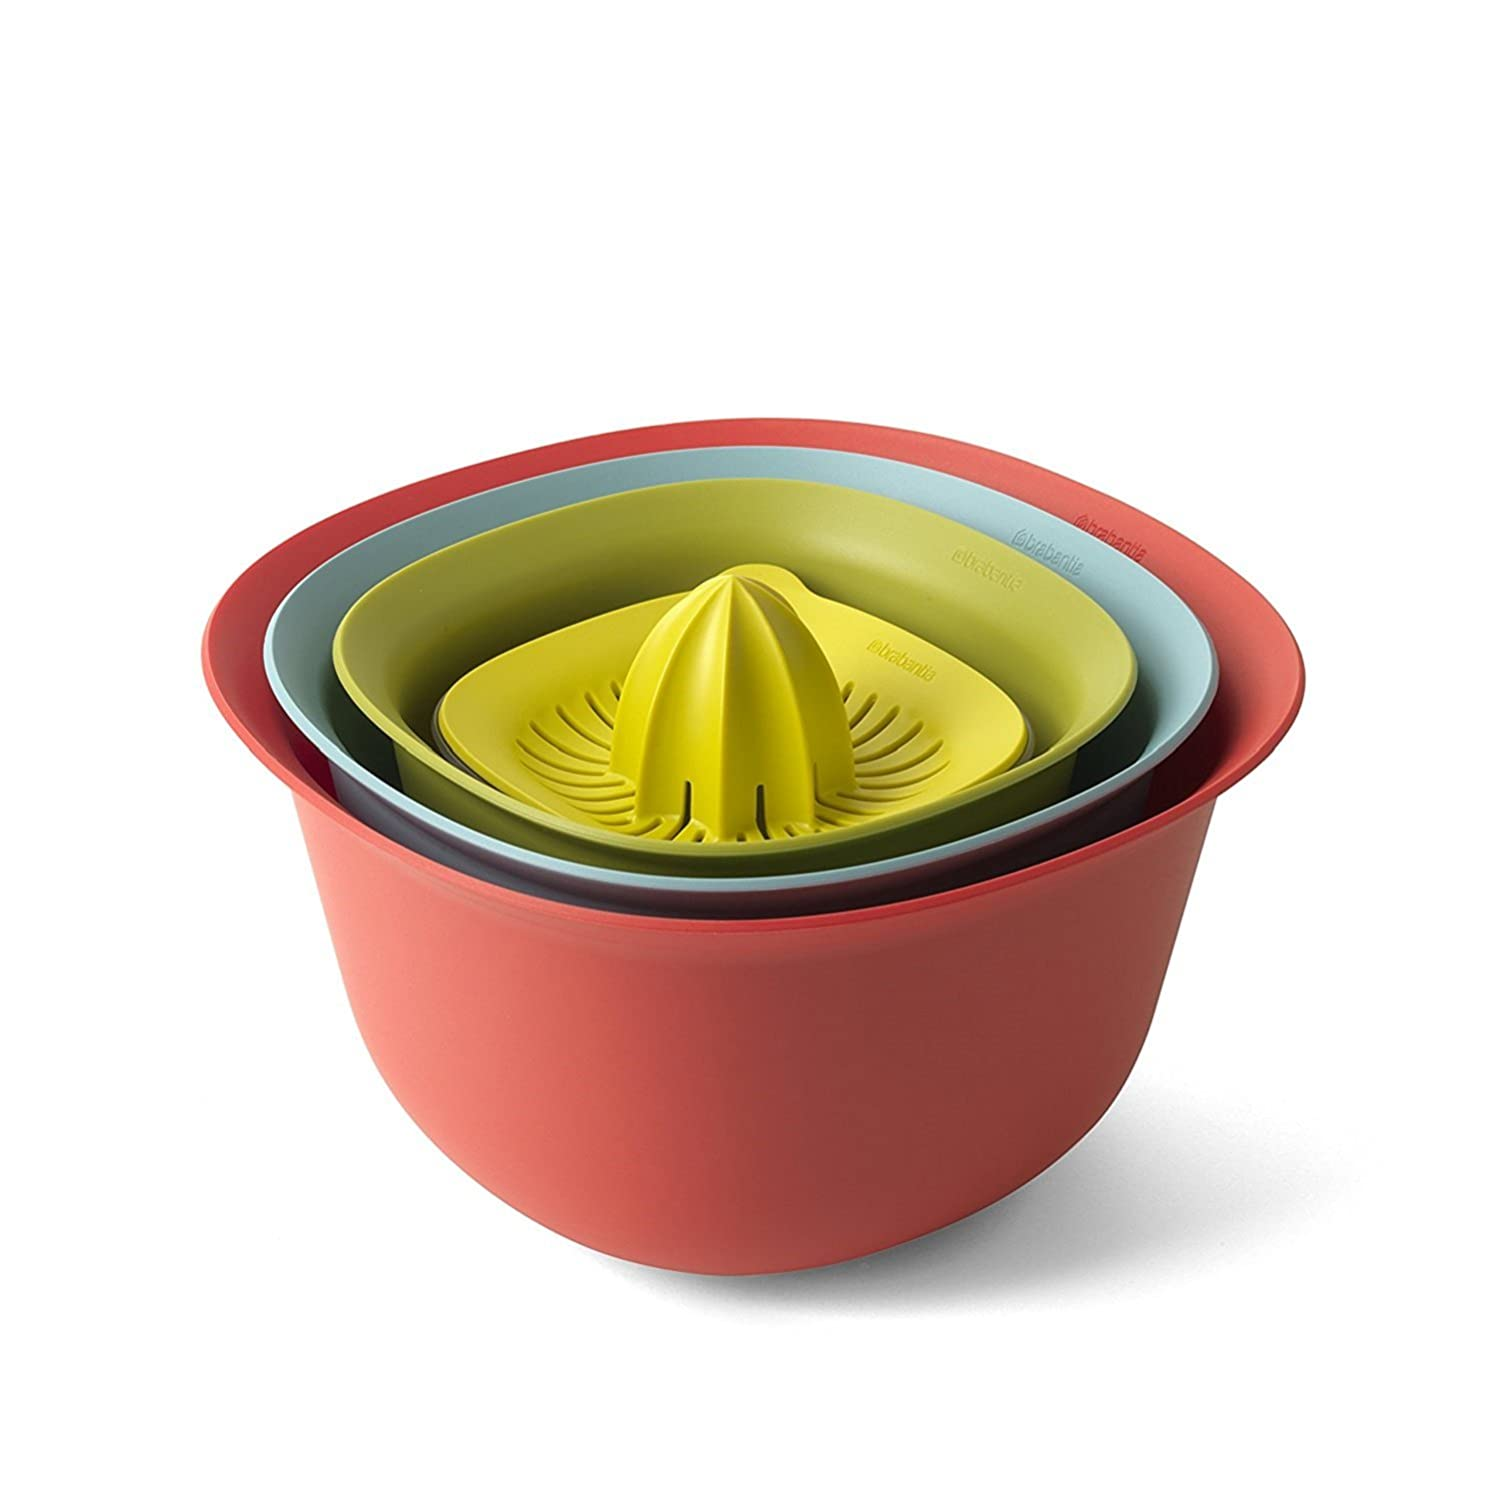 Brabantia Small Mixing Bowl, Plastic, Green, 1.5 Litre 110009